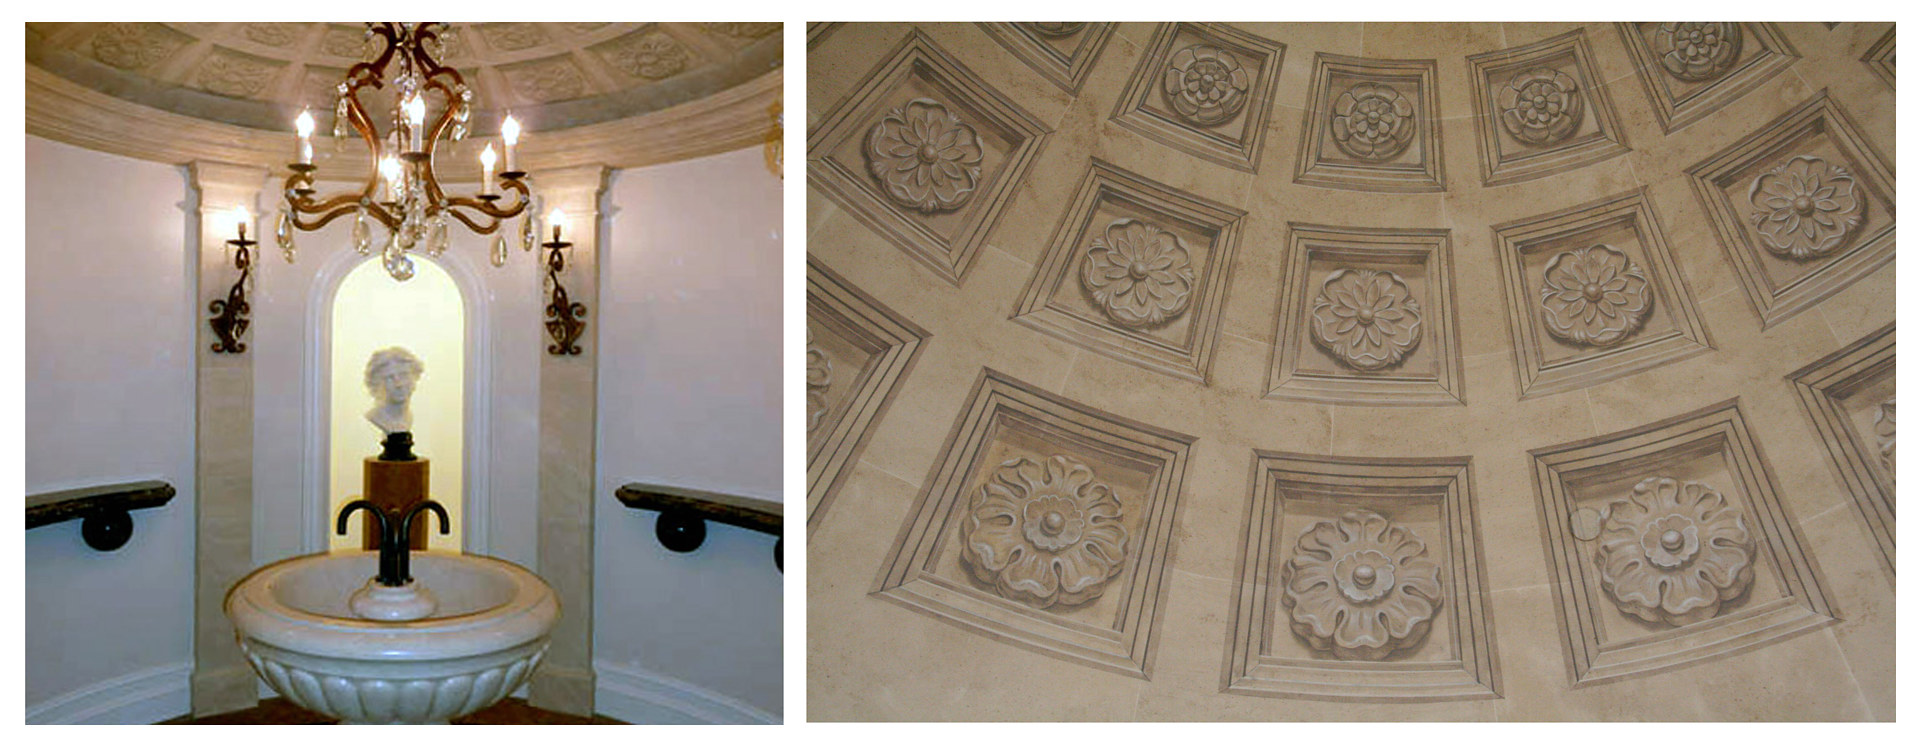 Limestone Surround and Ceiling by Robert Milling